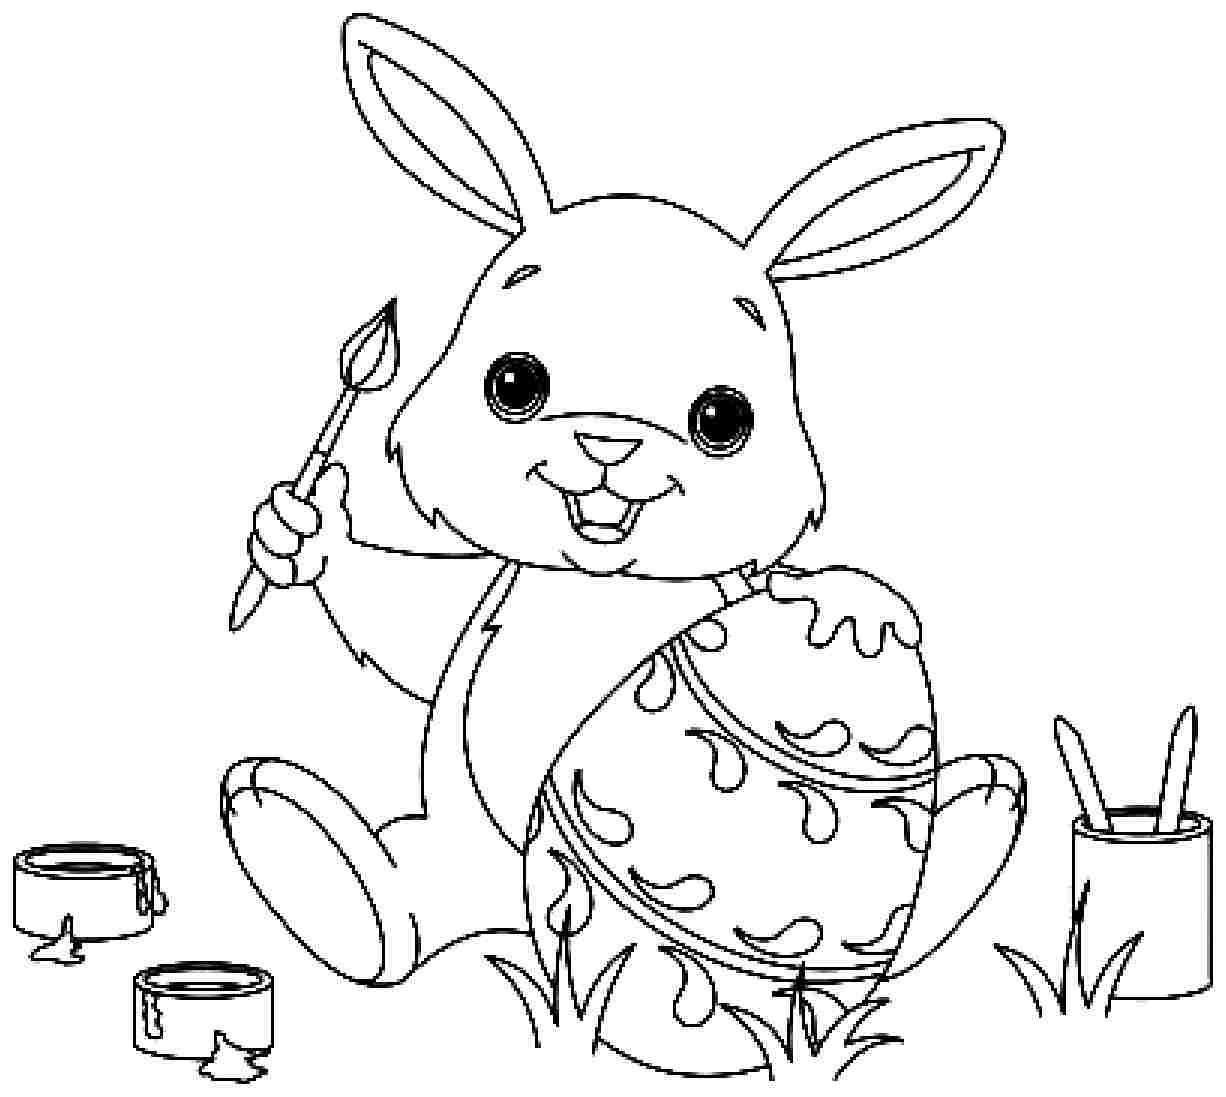 1226x1097 Easter Bunny Coloring Pages For Adults